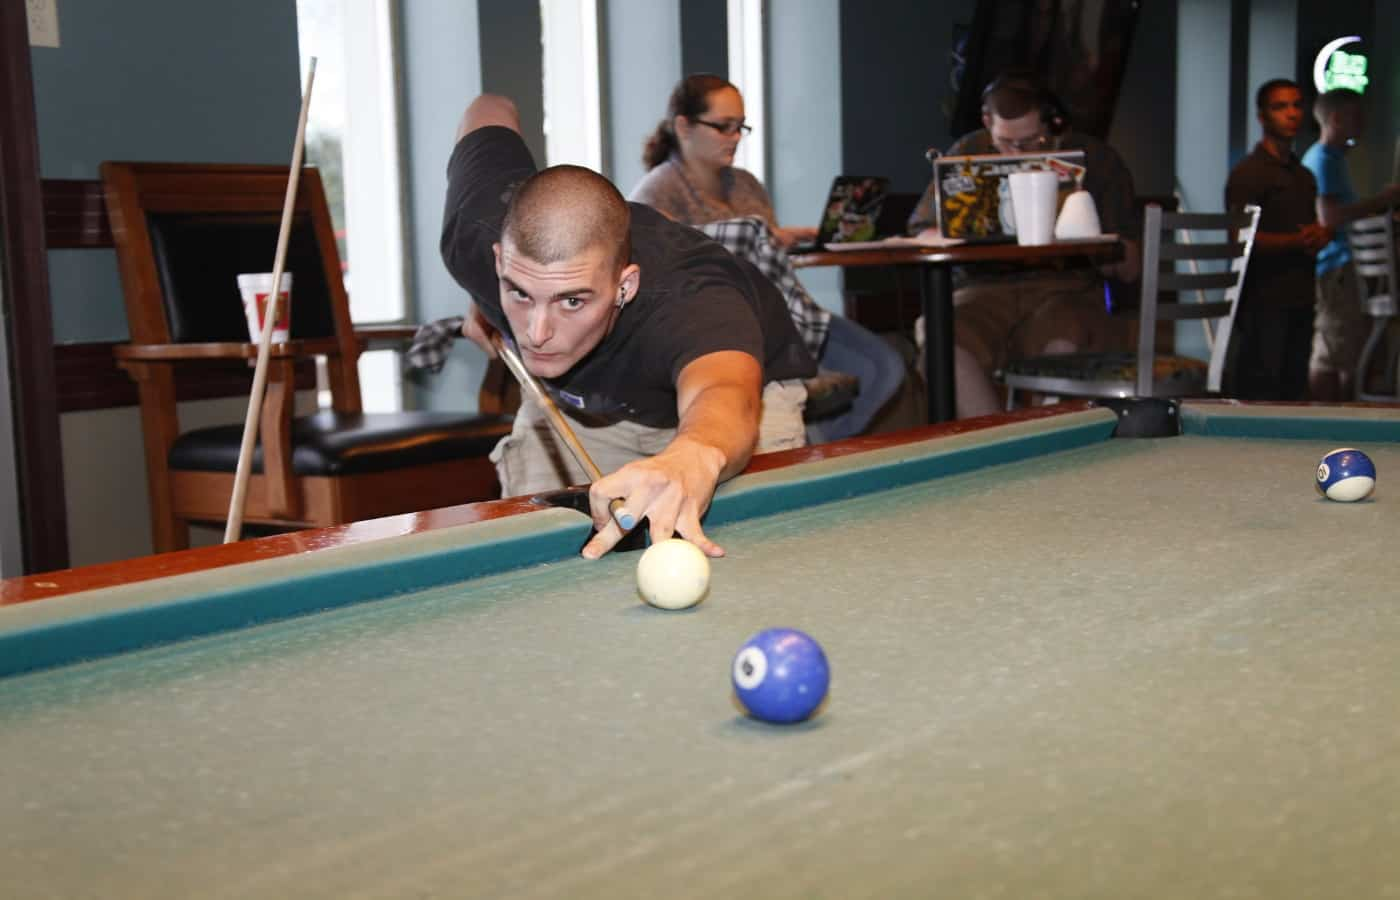 is playing pool bad for your back